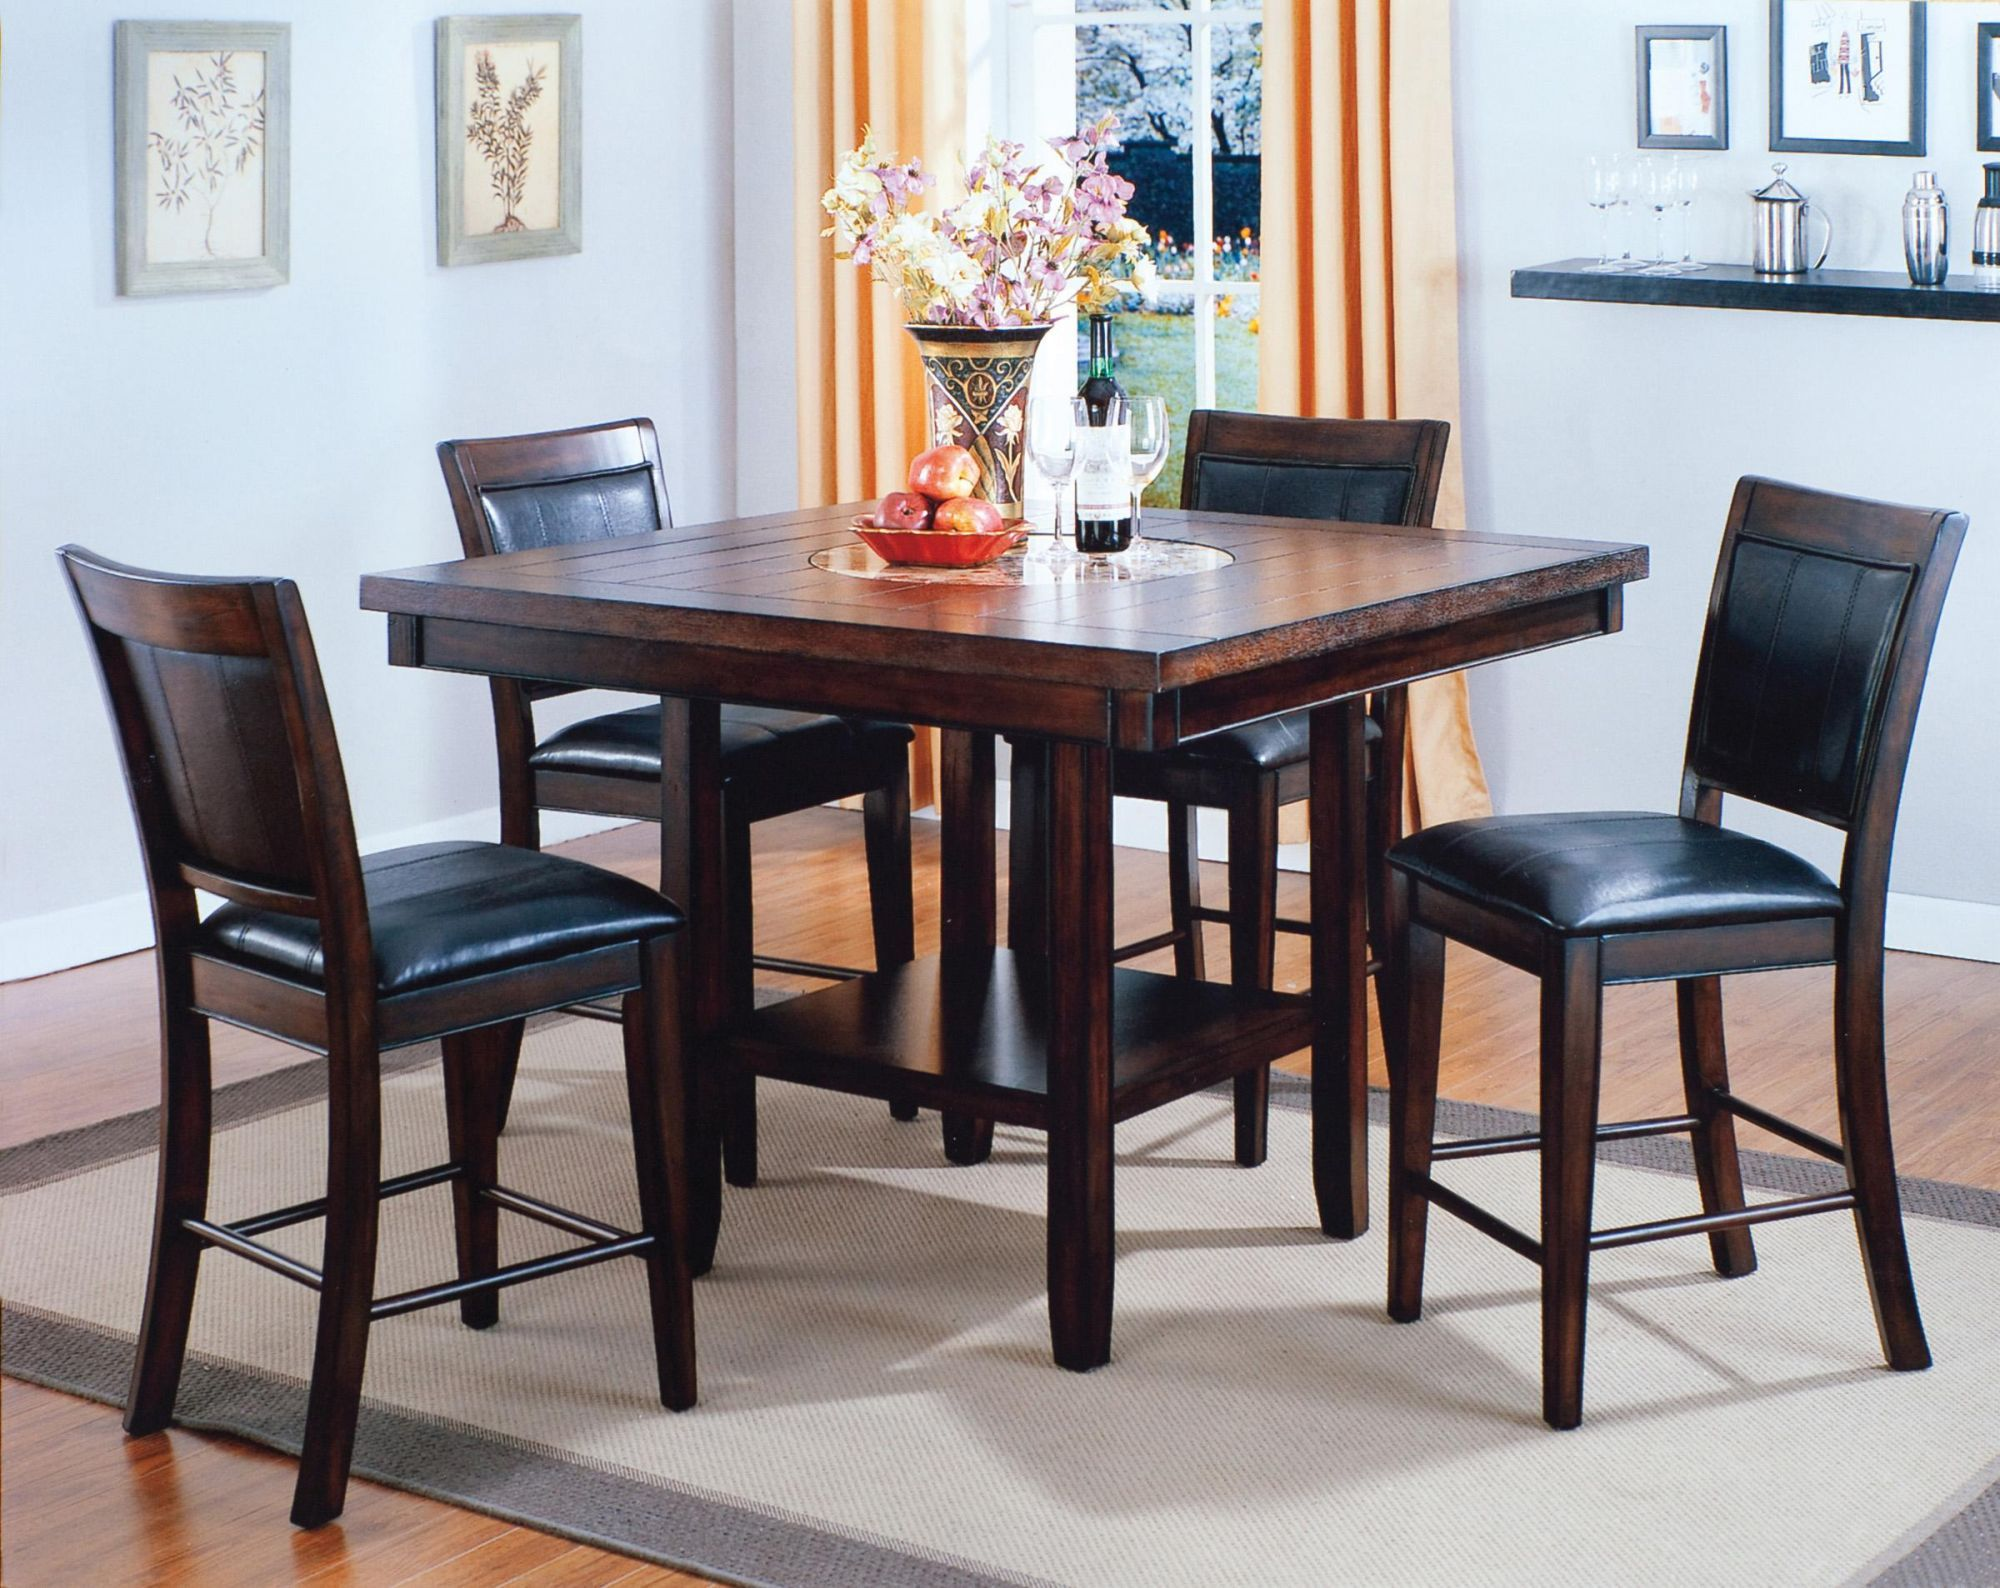 Fulton Dining Set Table With 4 Stools Discount Living Room